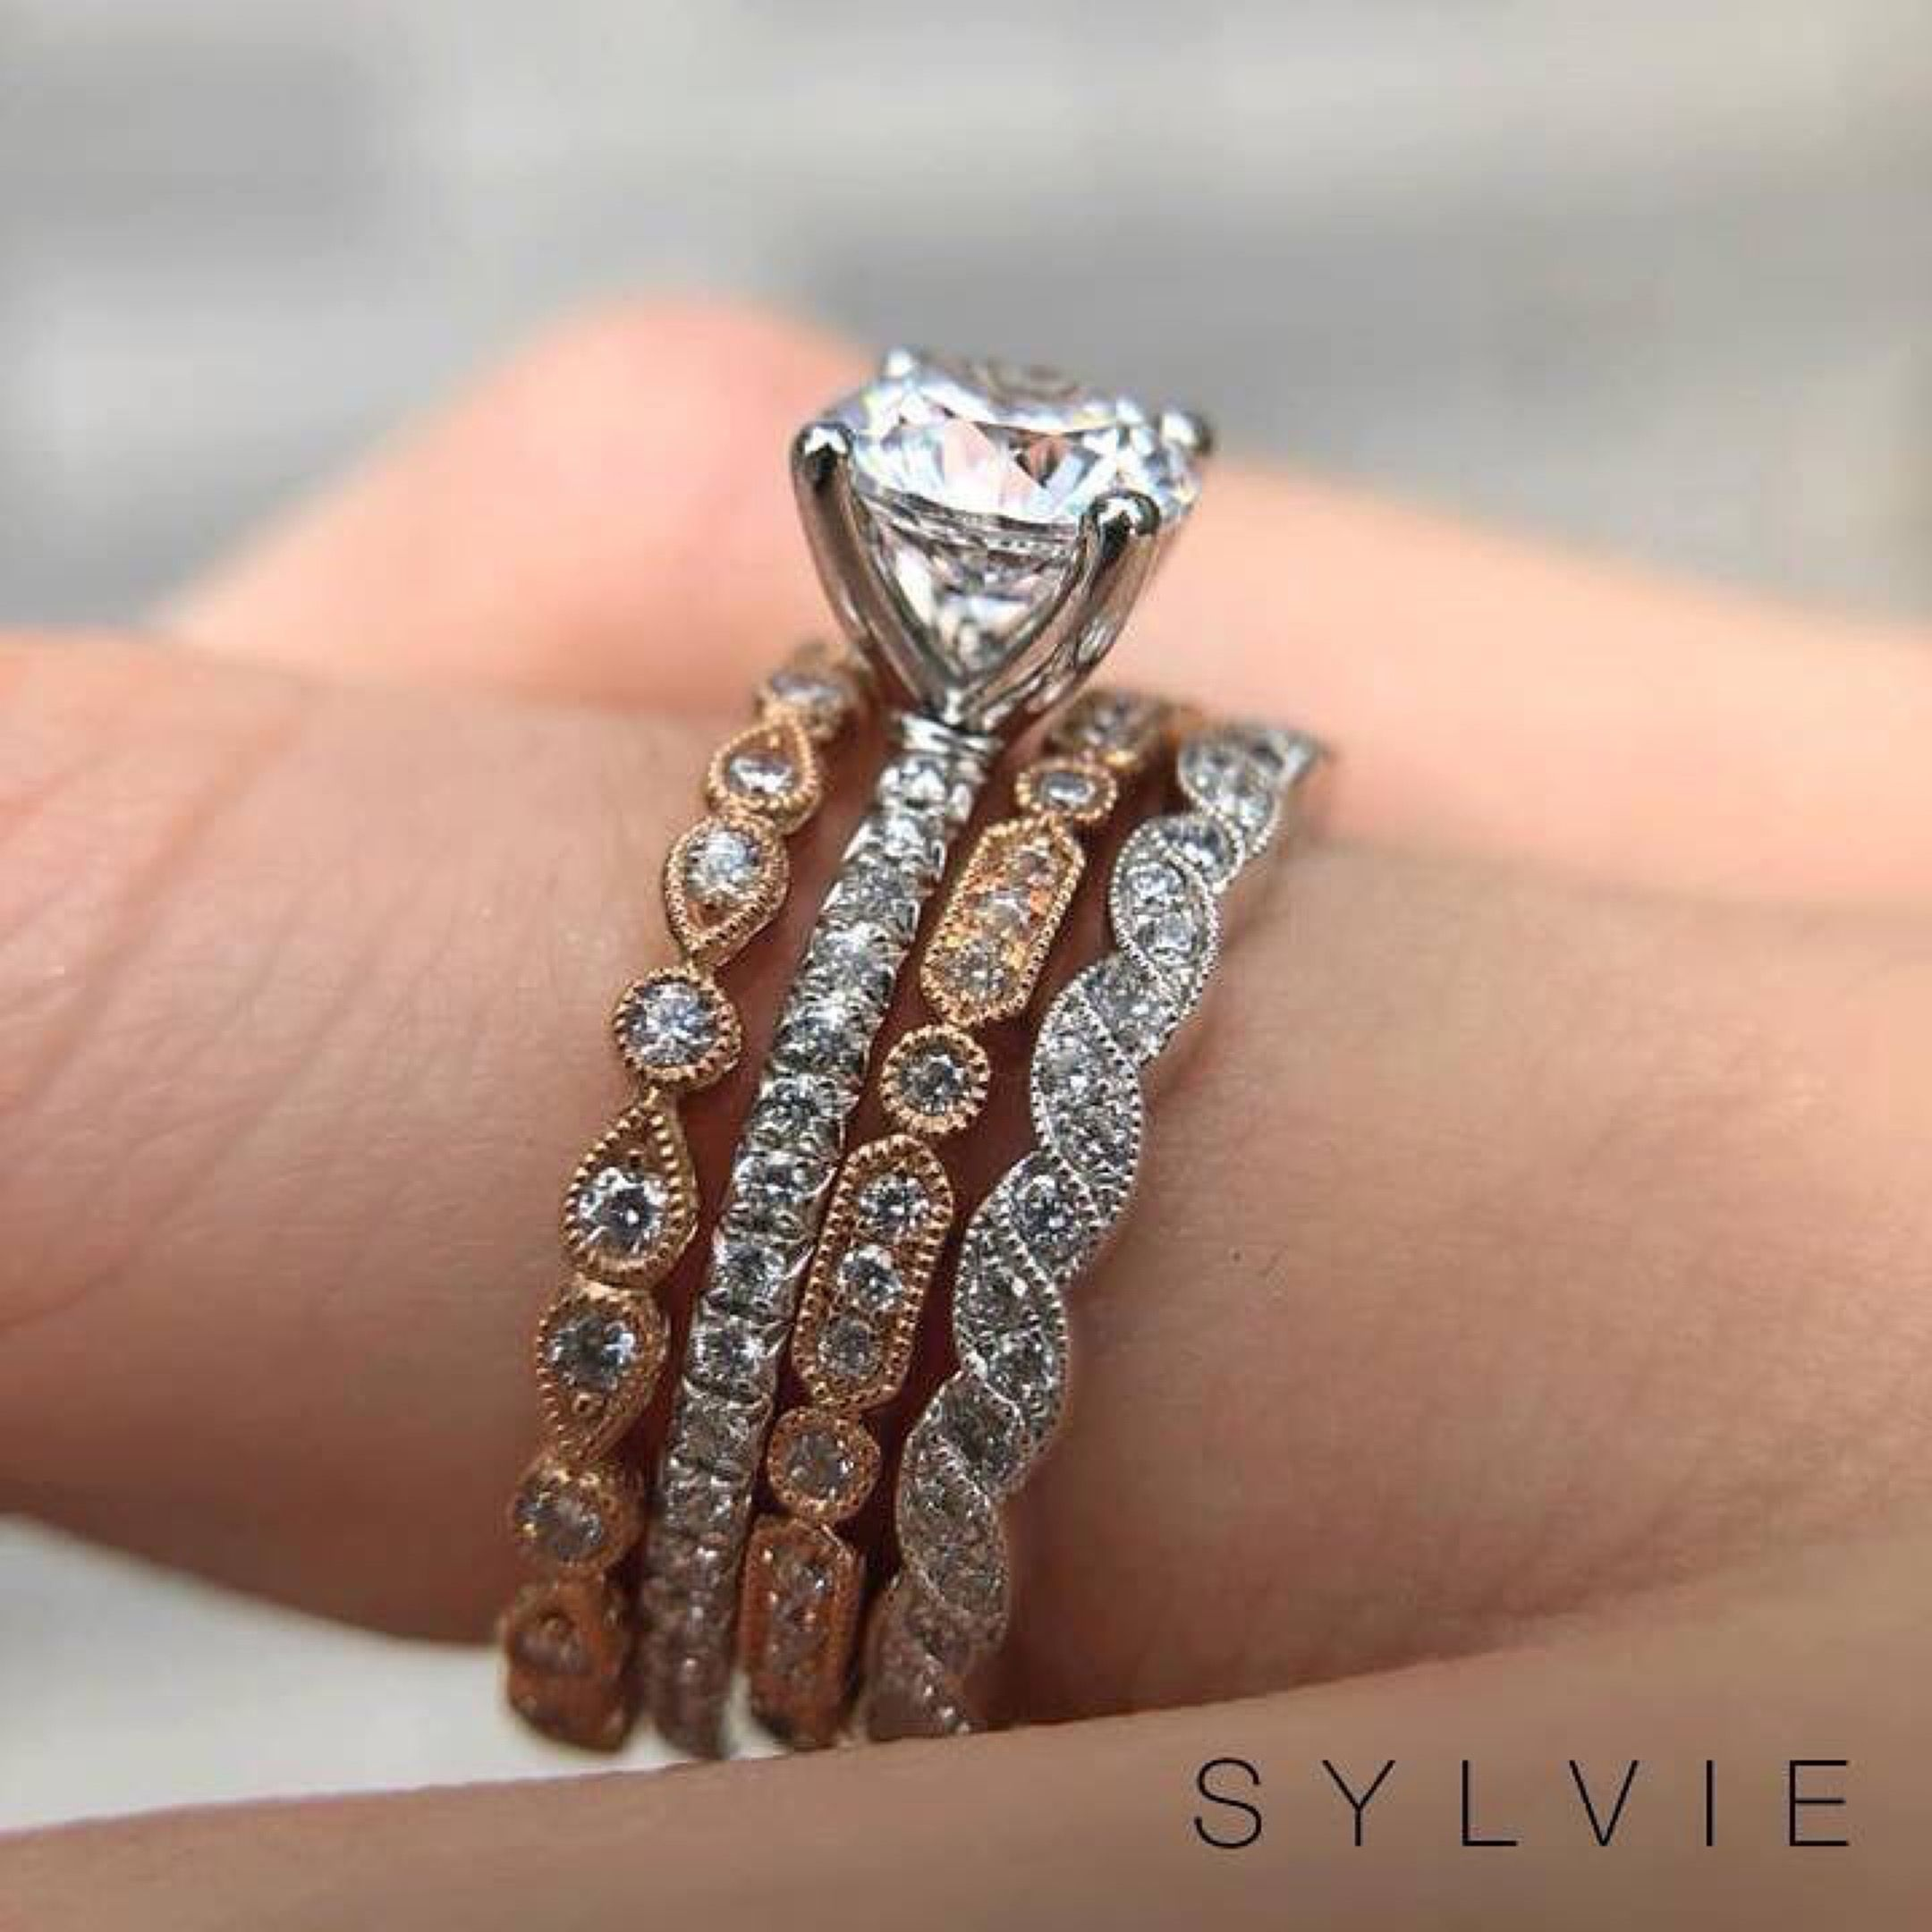 Mixed Metal Bands Stacked With Sylvie Morganite Engagement Ring Vintage Vintage Engagement Rings Rose Gold Engagement Ring